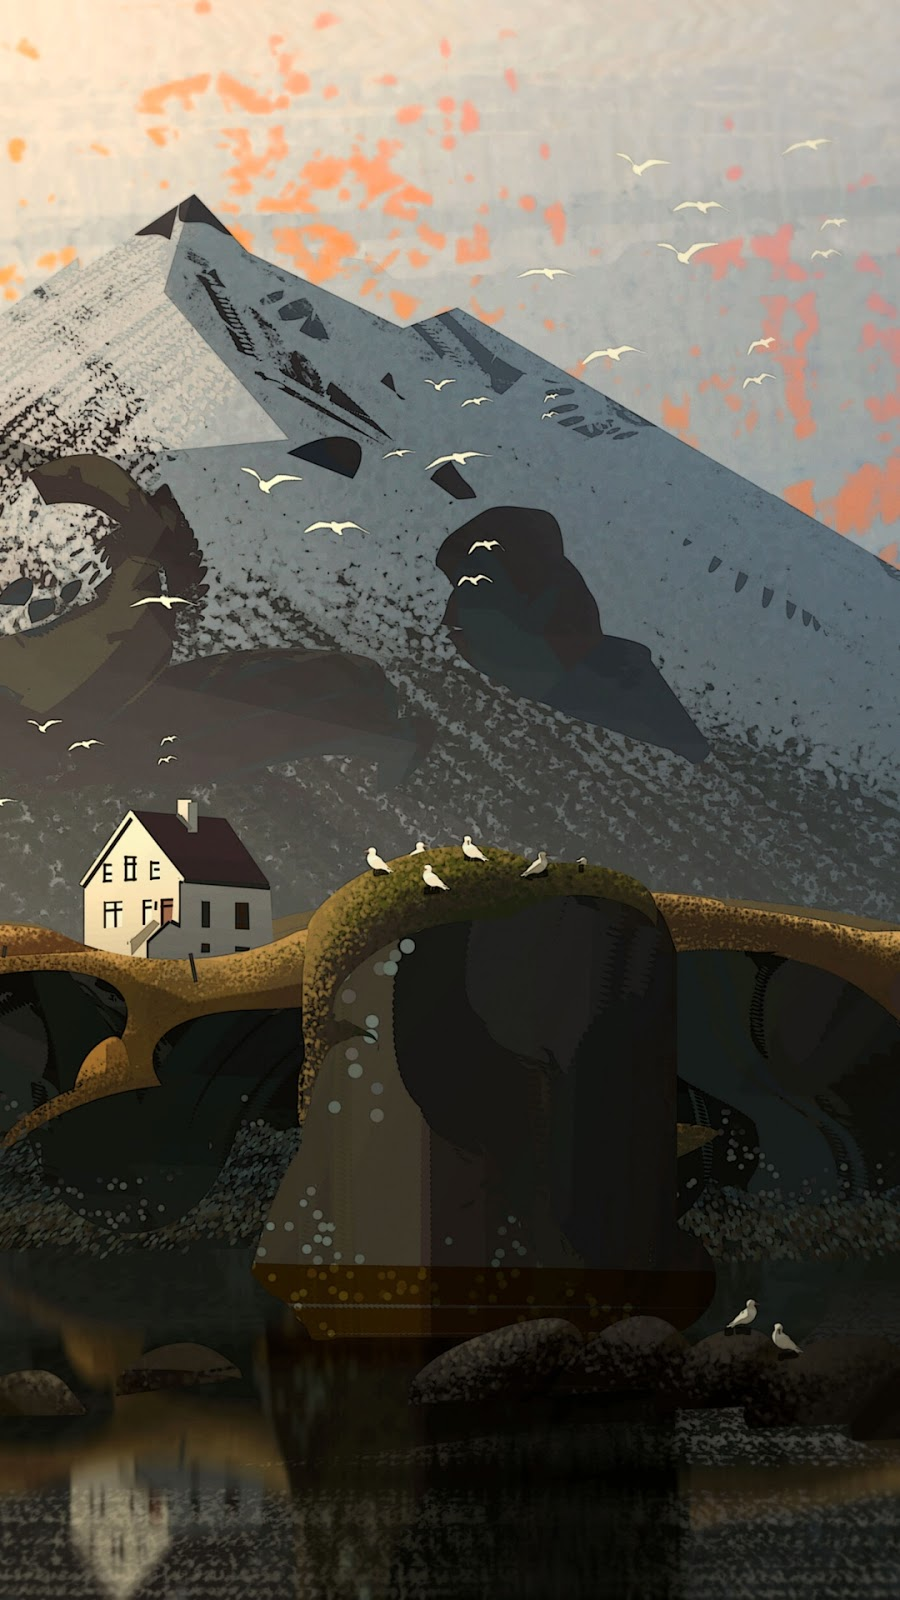 mountain house  illustration in 1080 pixels to use as phone wallpaper